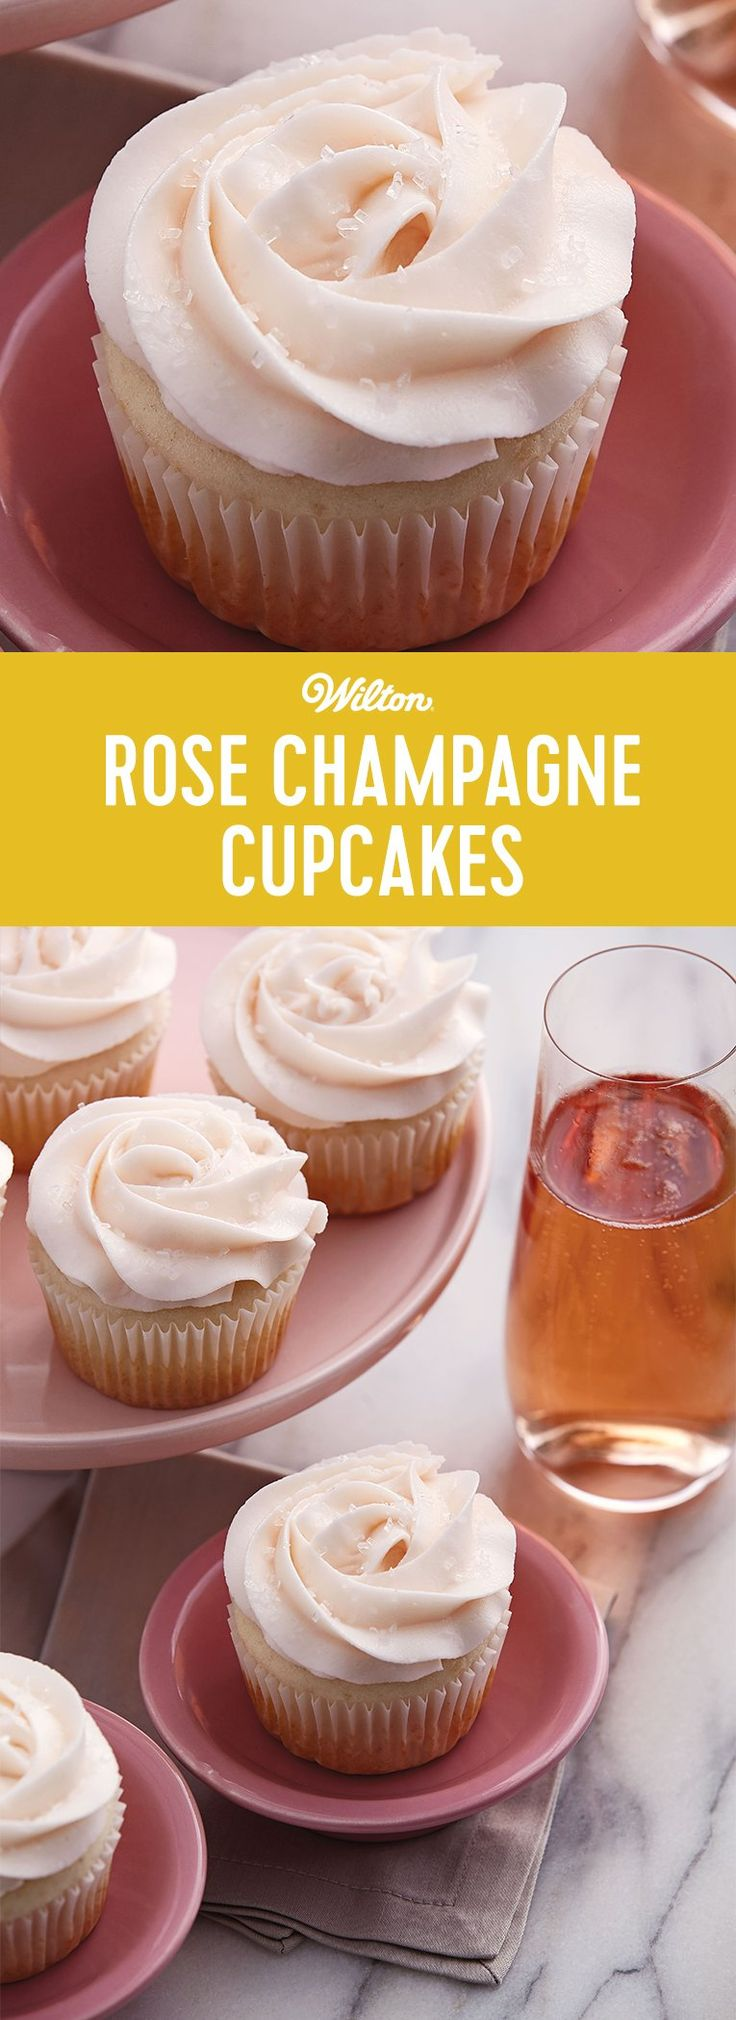 Rose Champagne Cupcakes - Add a little touch of elegance and sophistication to your New Year's Eve celebration with these Champagne Cupcakes with Rosewater Buttercream! This recipe is so easy to make and is perfect for last-minute treats. Recipe makes about 24 cupcakes.